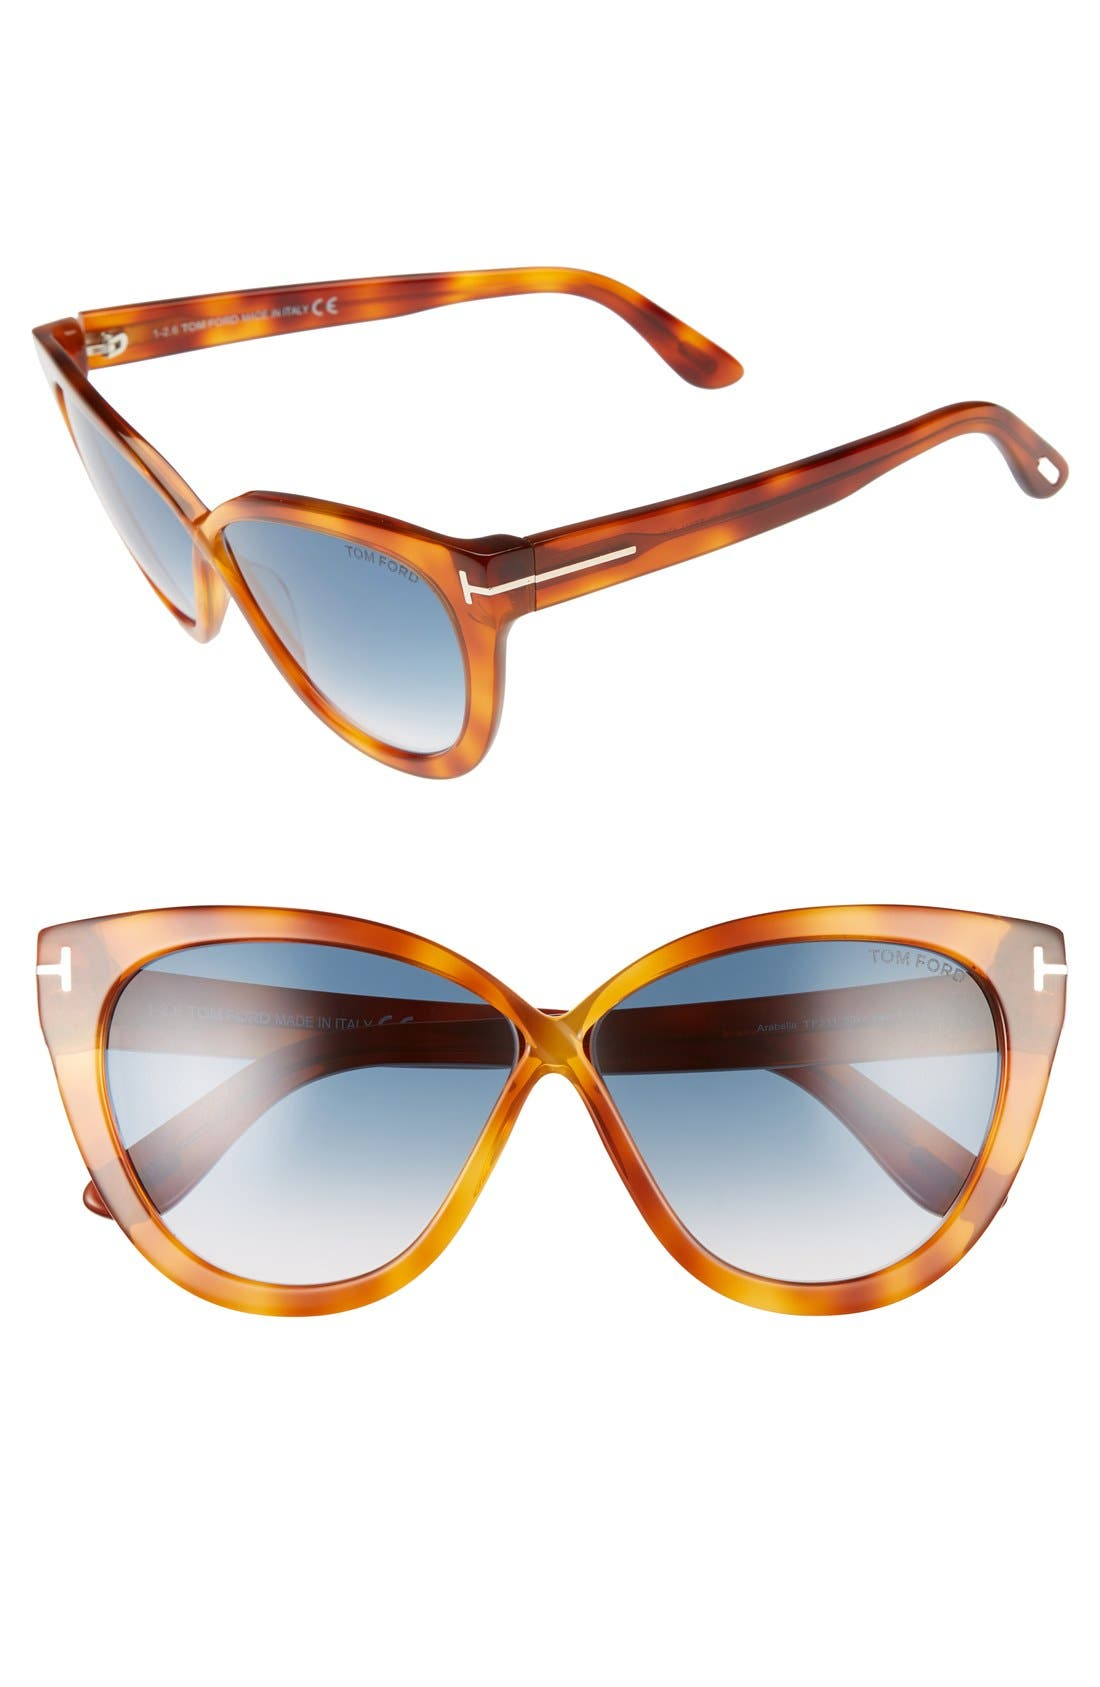 Alternate Image 1 Selected - Tom Ford Arabella 59mm Cat Eye Sunglasses